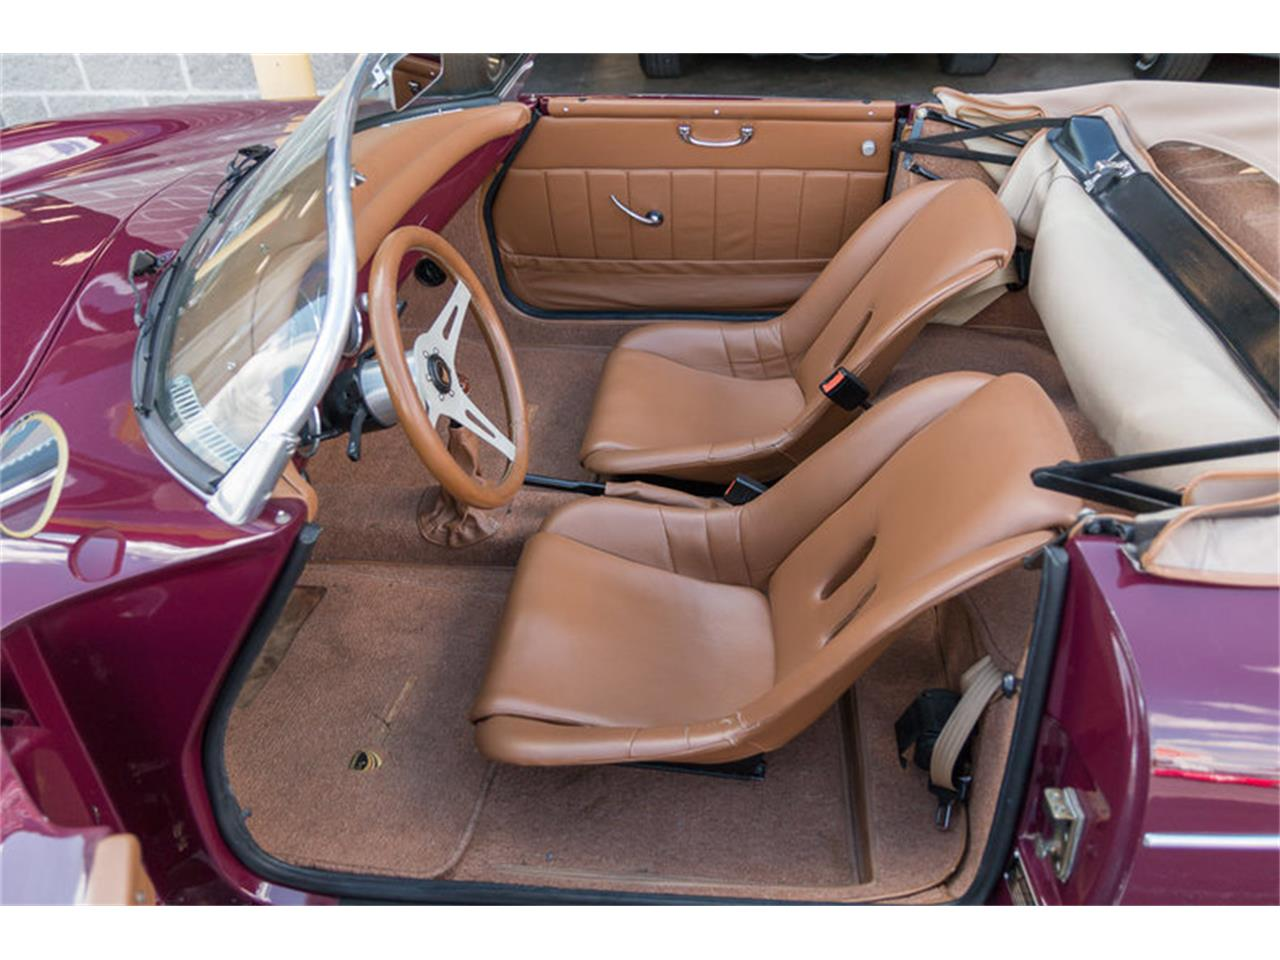 Large Picture of Classic 1957 Other/special Speedster located in St. Charles Missouri - $34,995.00 - L3G9